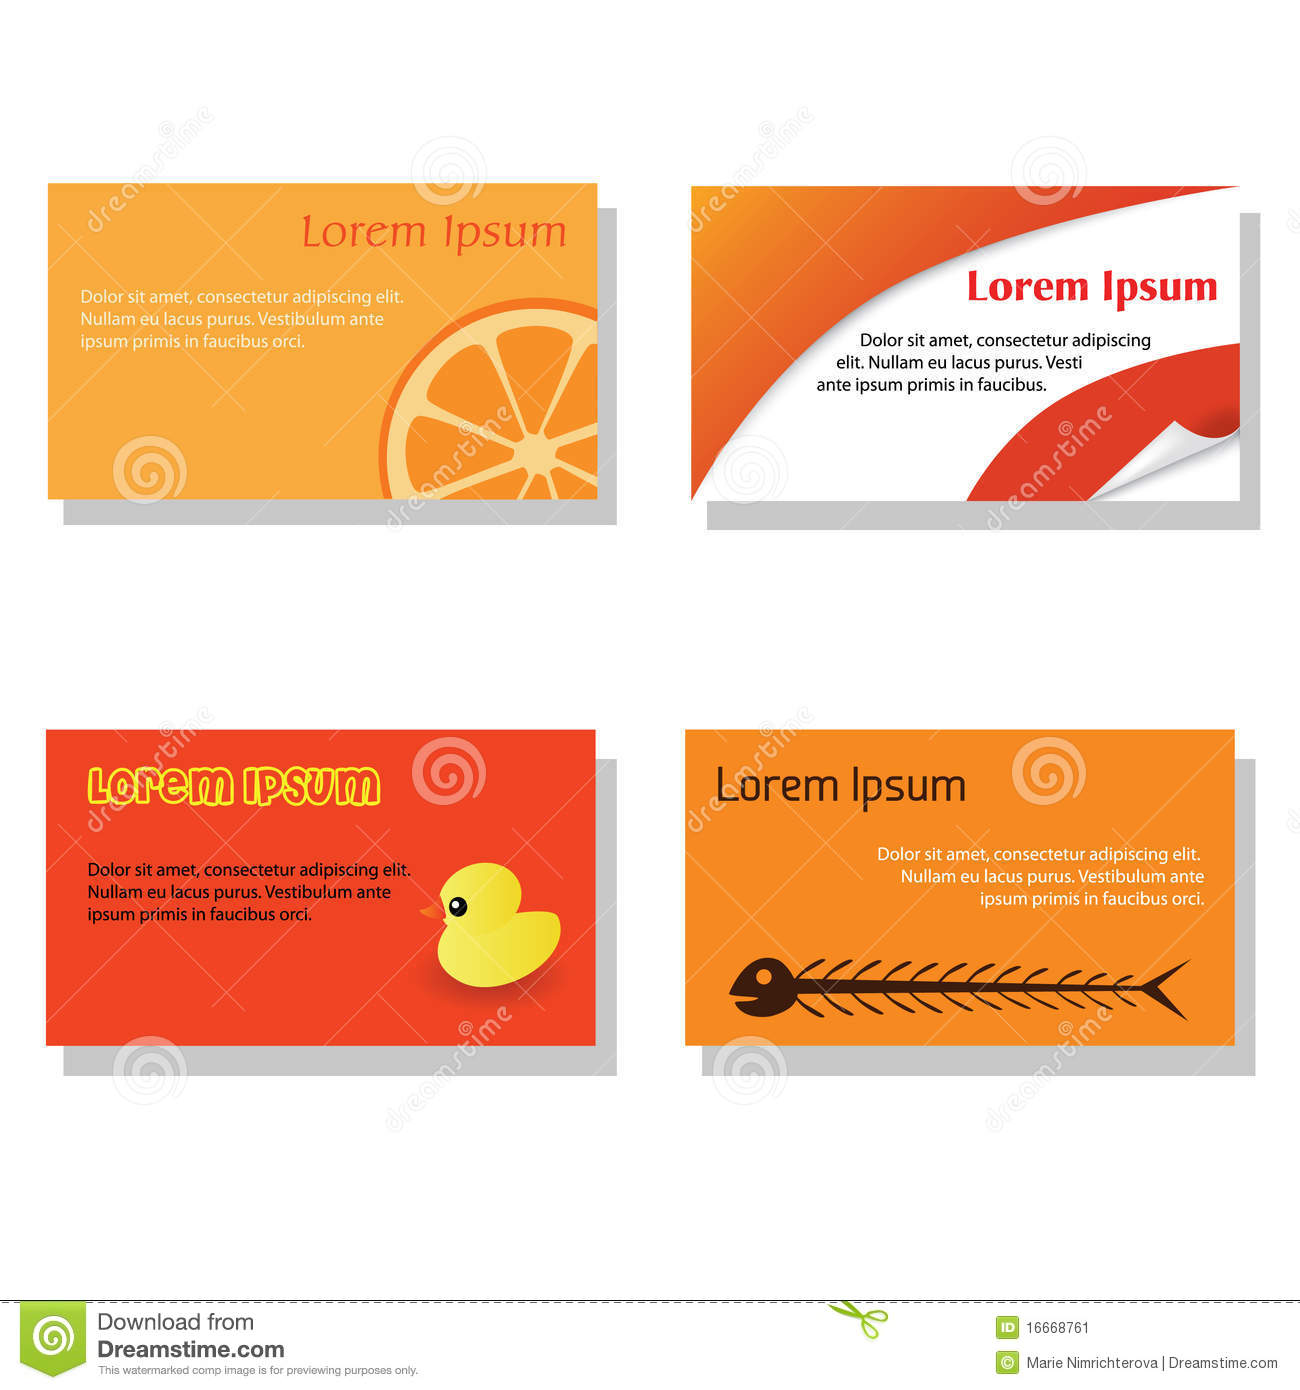 Stock Image Business card Image